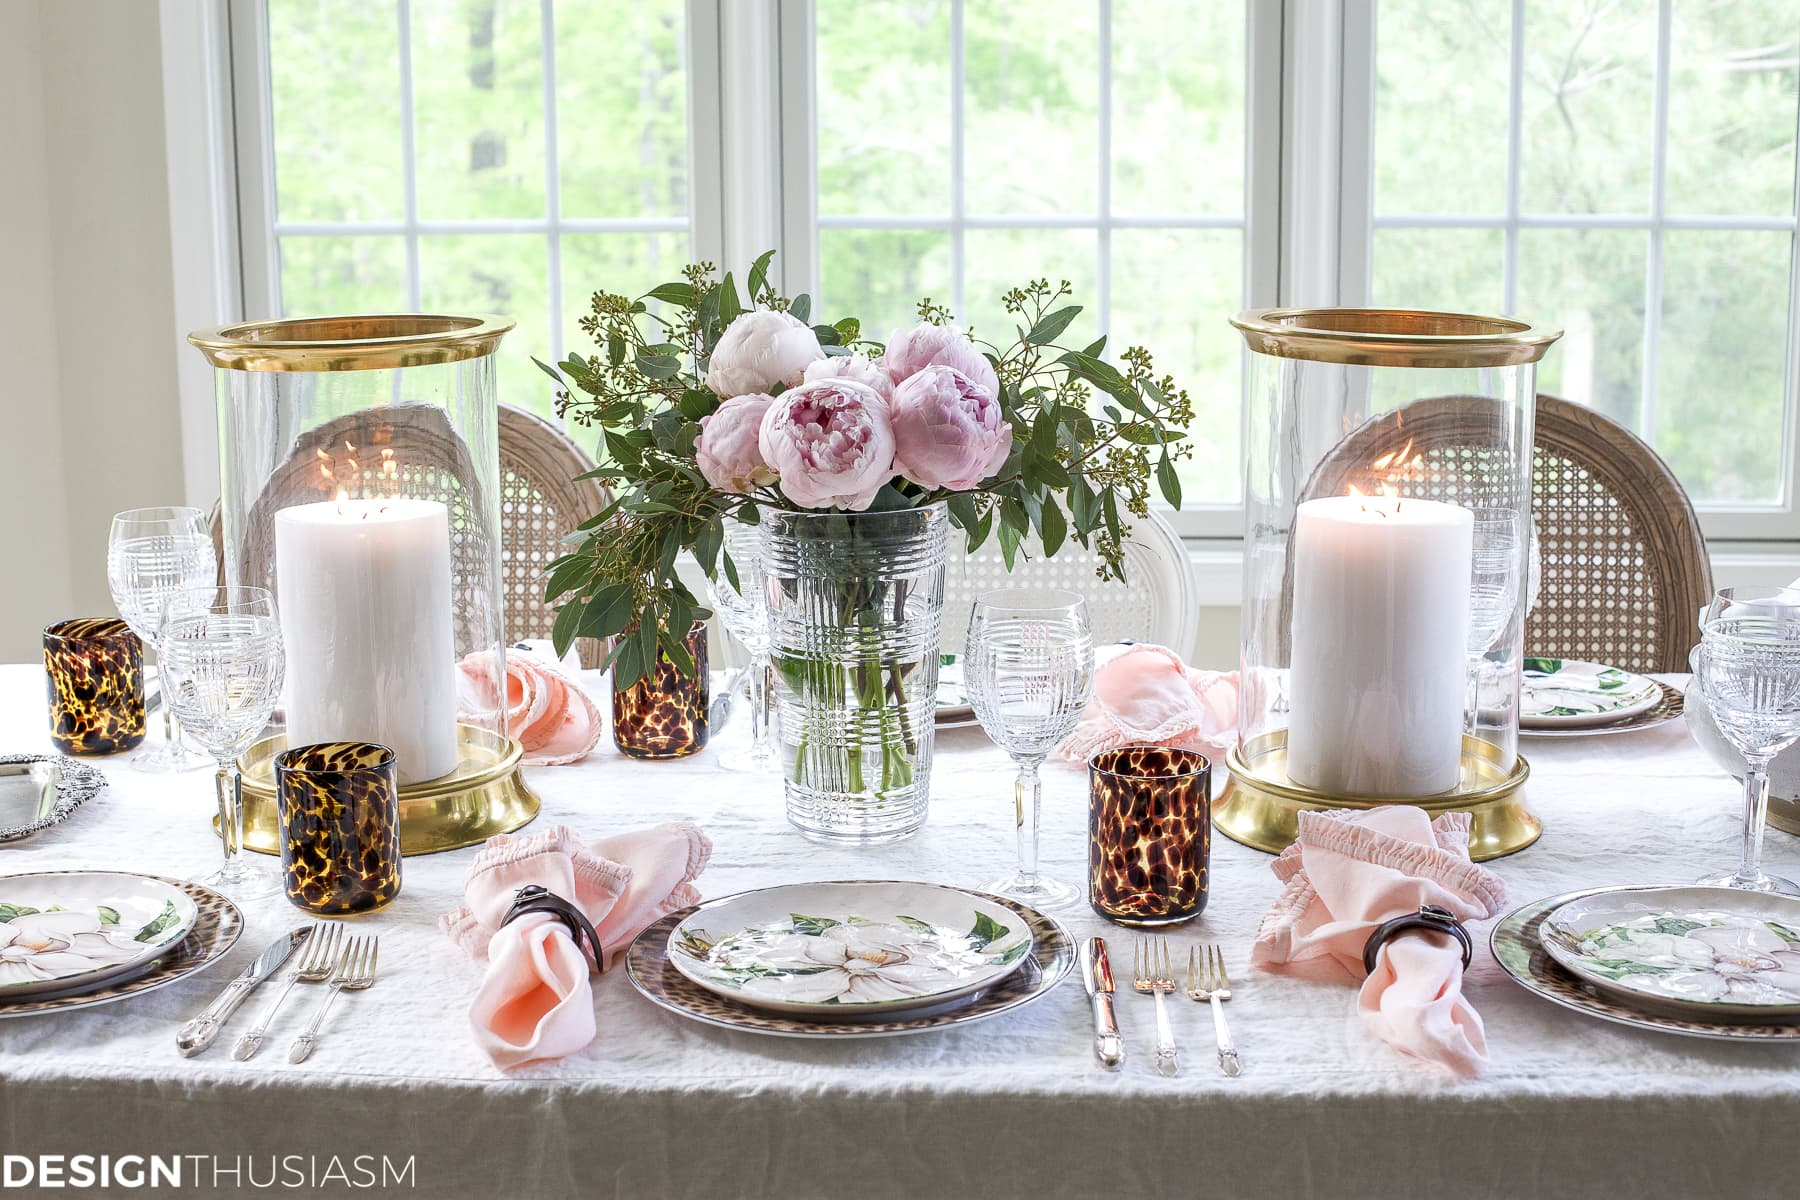 Cool Plates: Mixing Animal Print and Soft Floral in a Tablescape